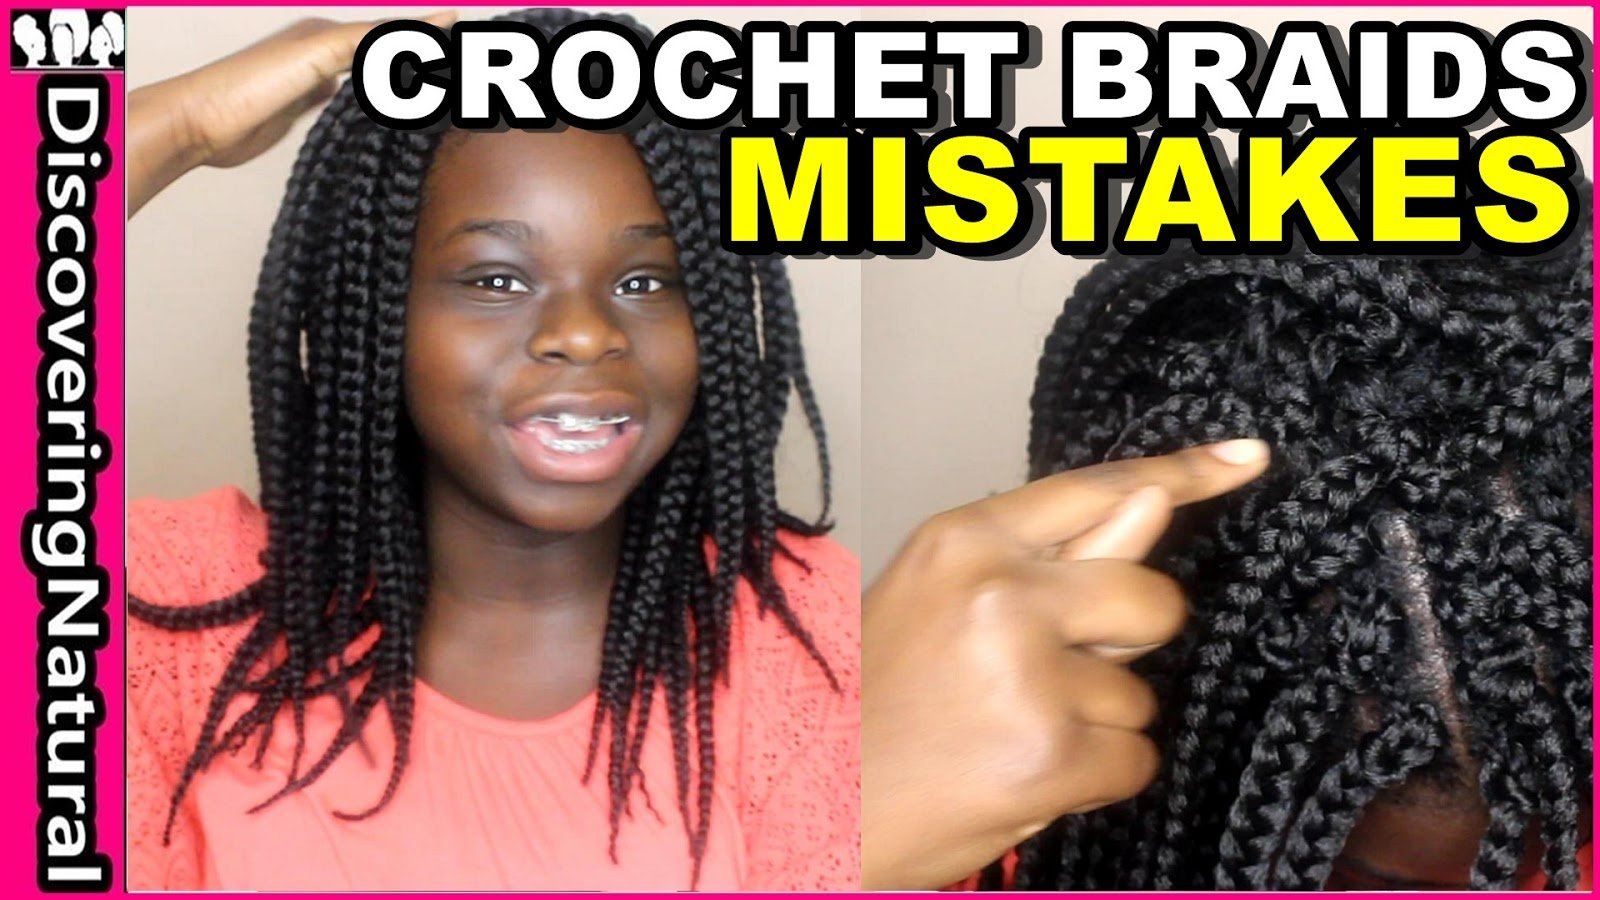 Crochet Braids: What Mistakes To Avoid.